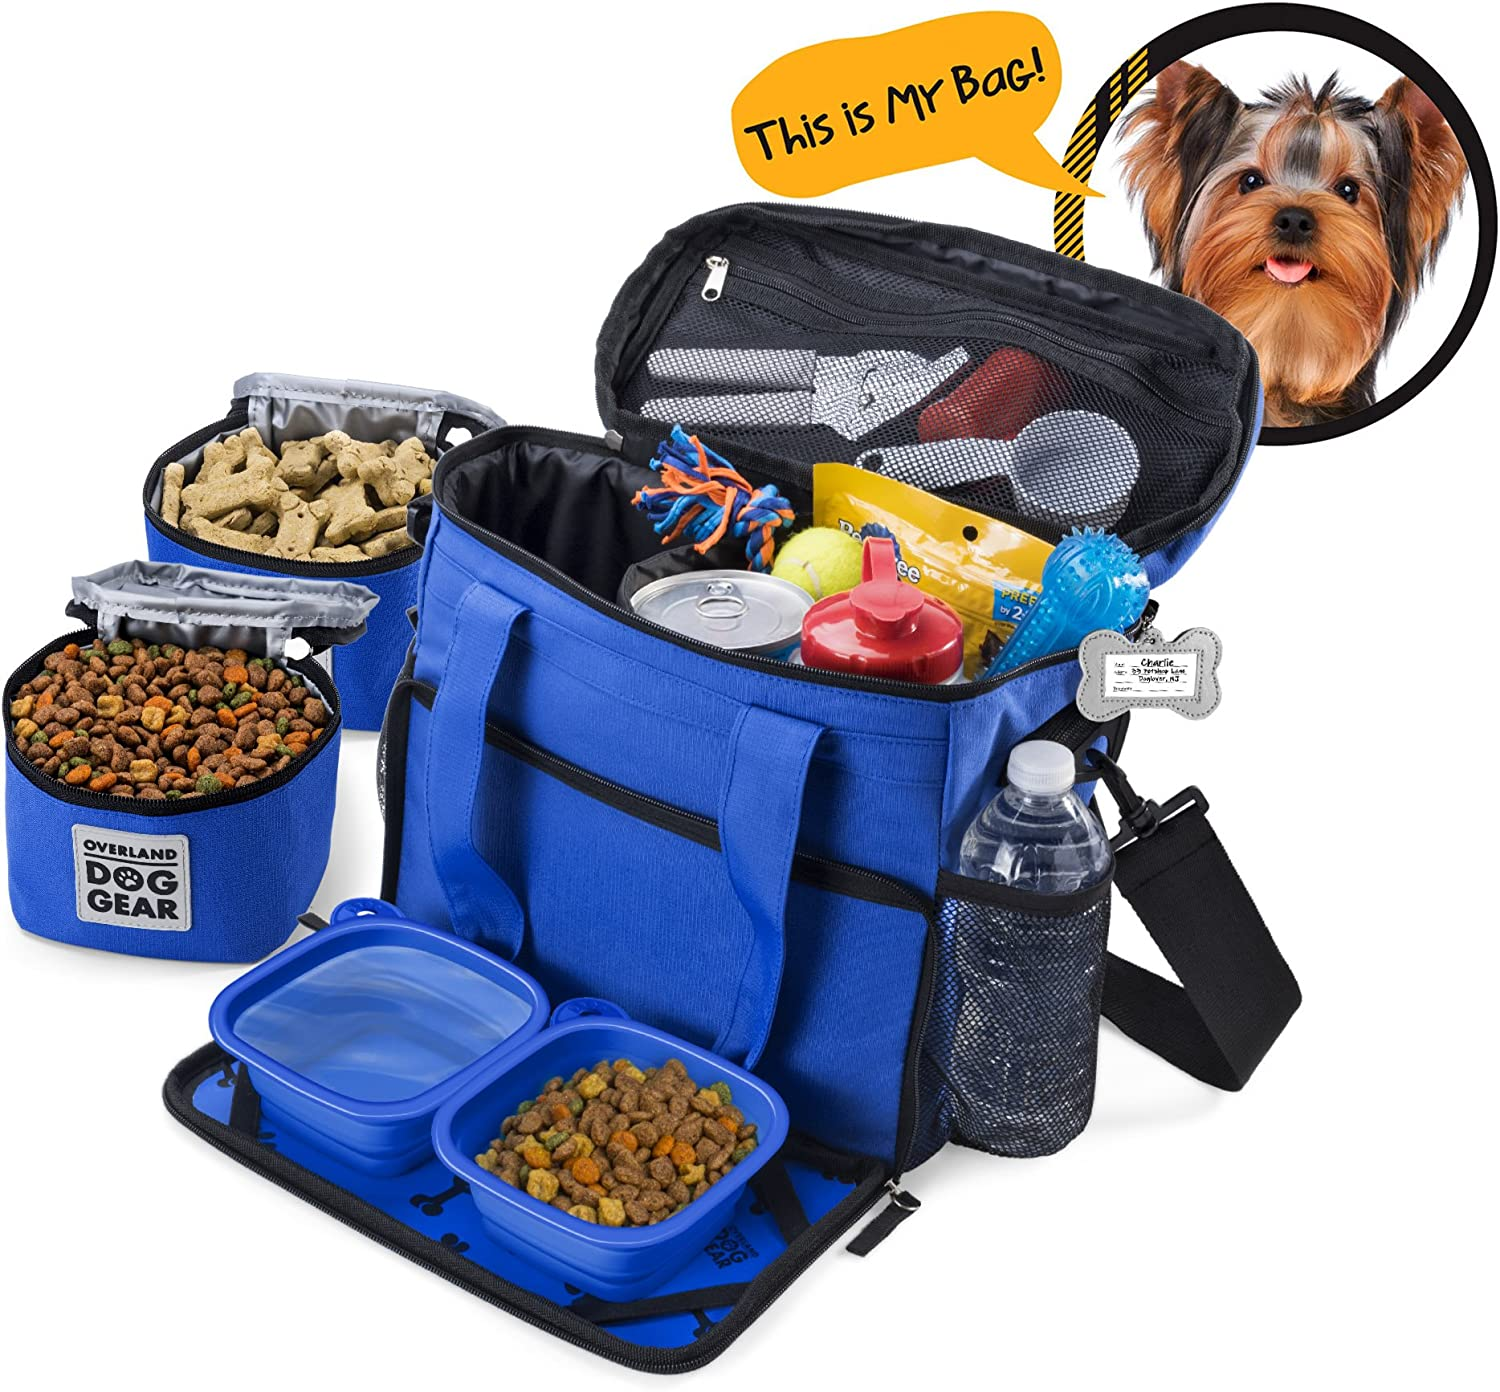 Dog Travel Bag  Week Away Tote For Small Dogs  Includes Bag, 2 Lined Food Carriers, Placemat, and 2 Collapsible Bowls